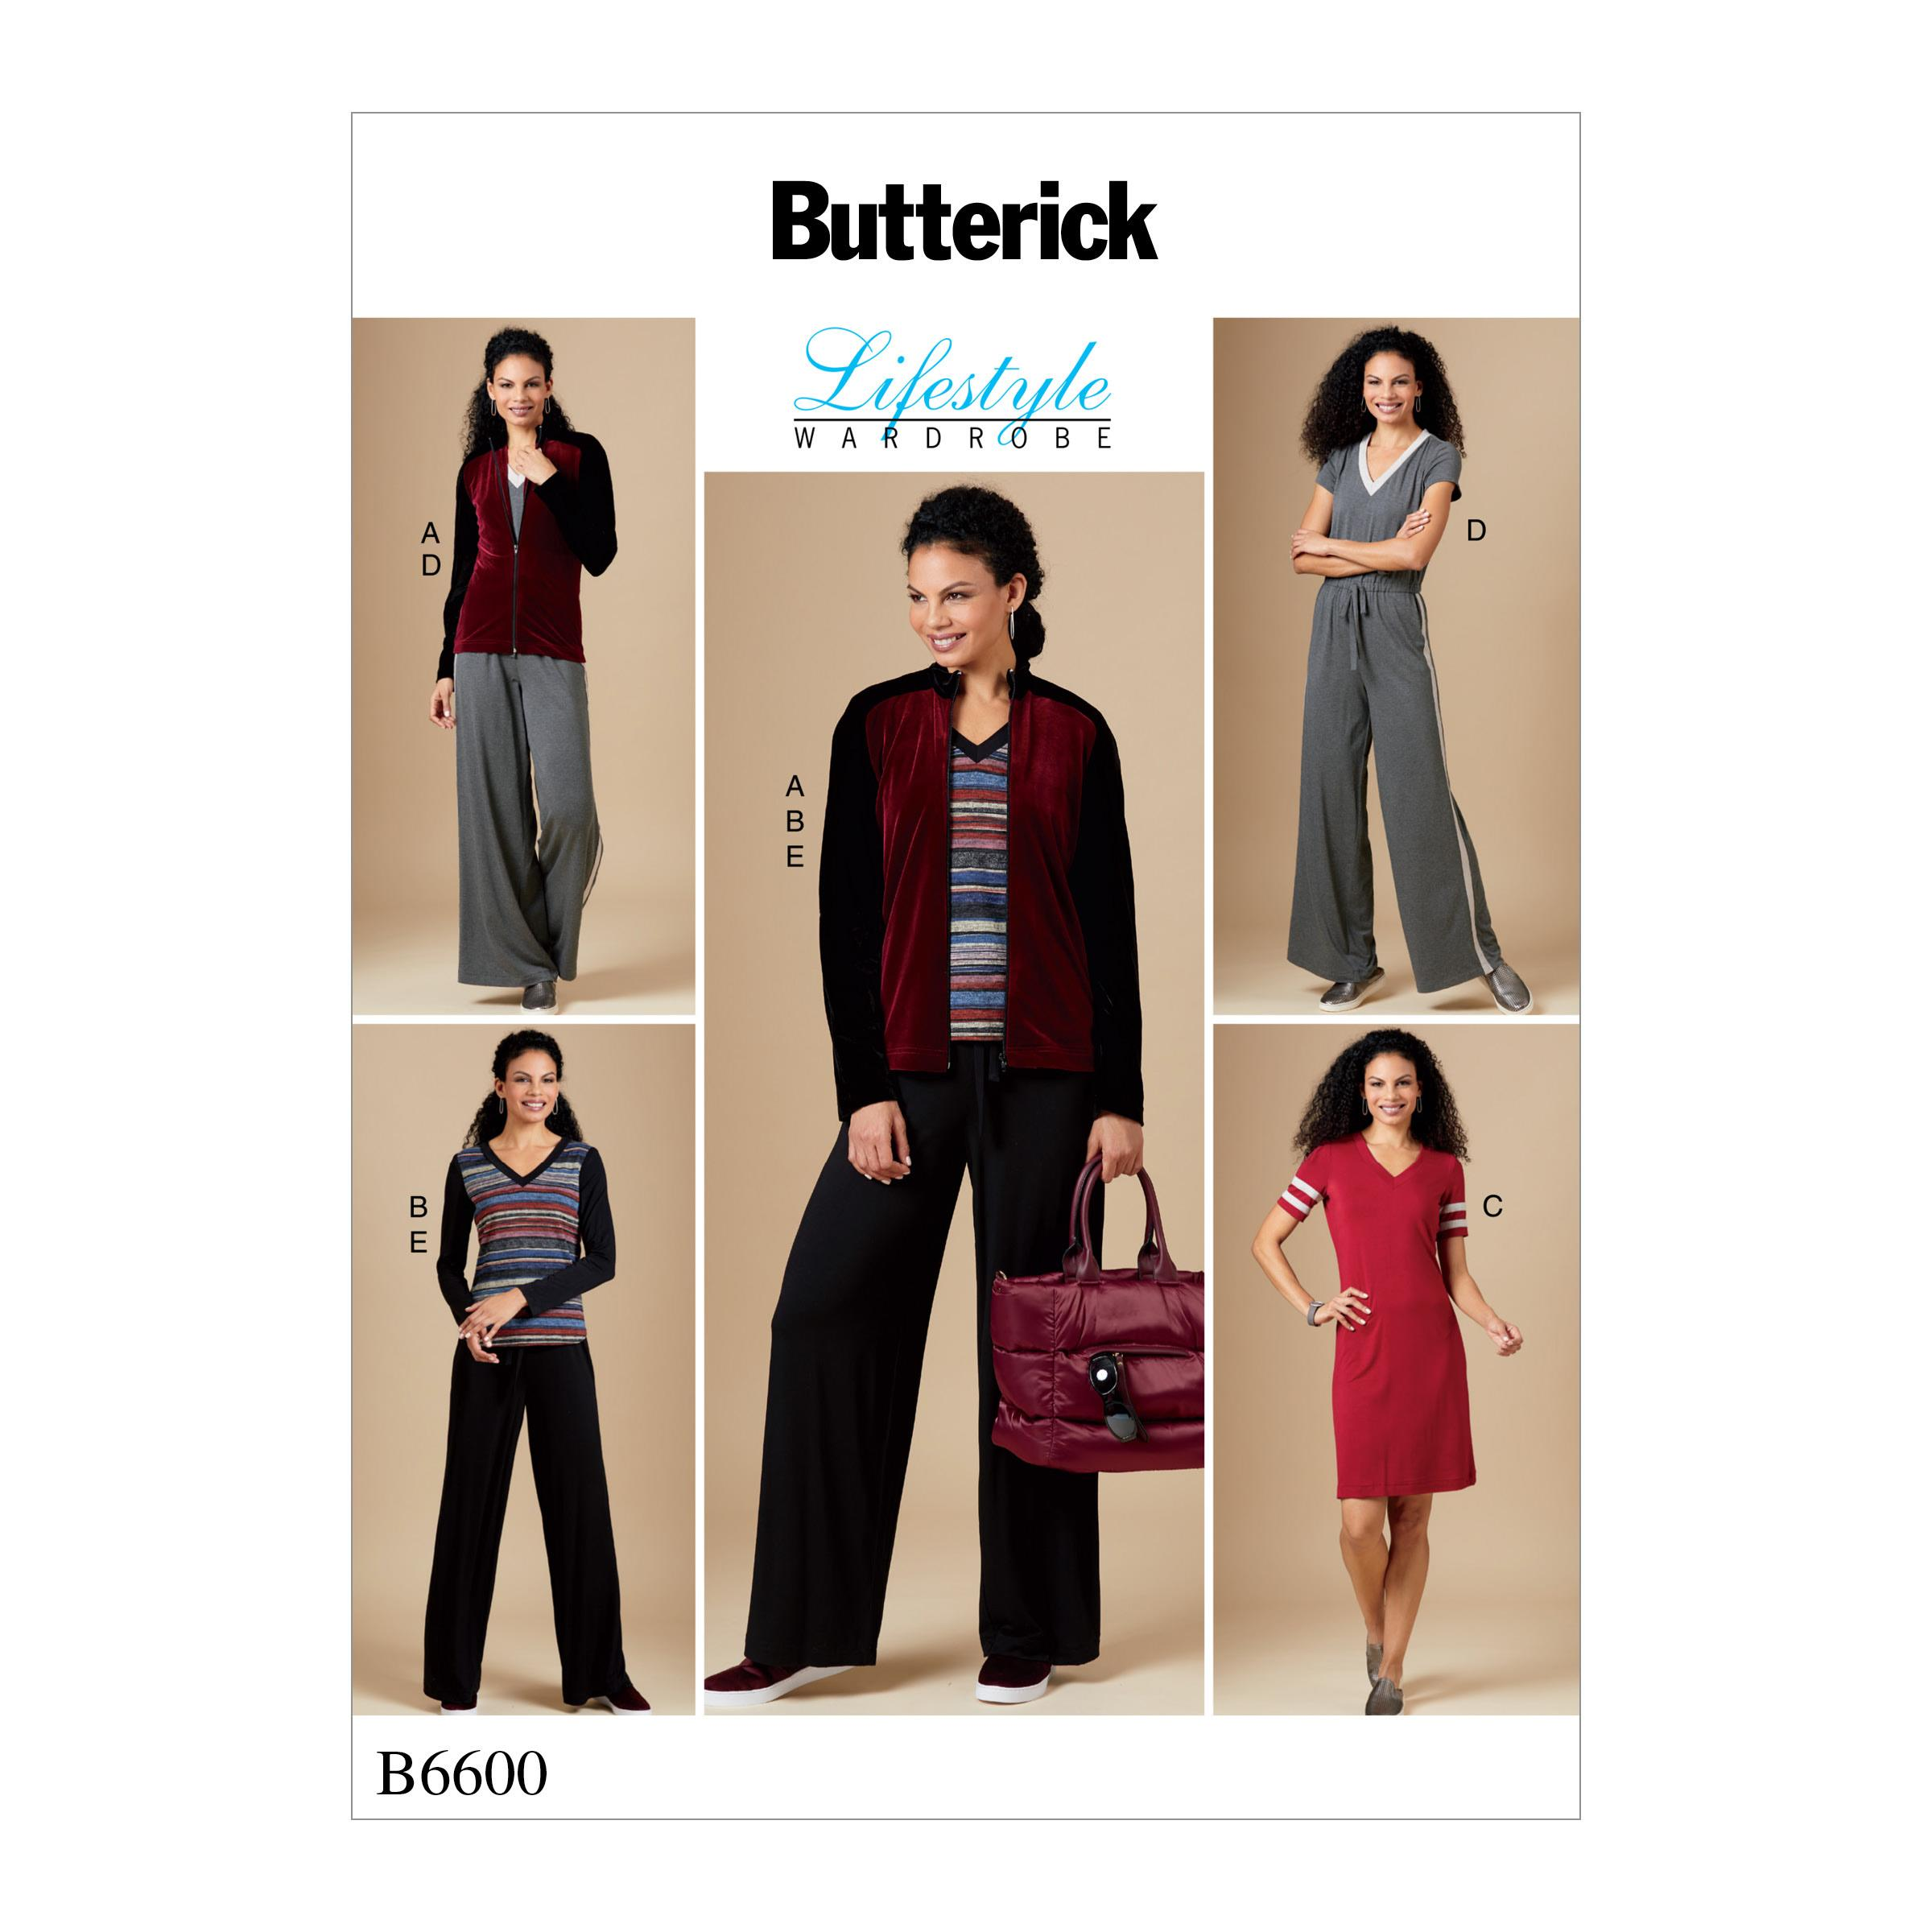 Butterick B6600 Misses' Jacket, Top, Dress, Jumpsuit and Pants